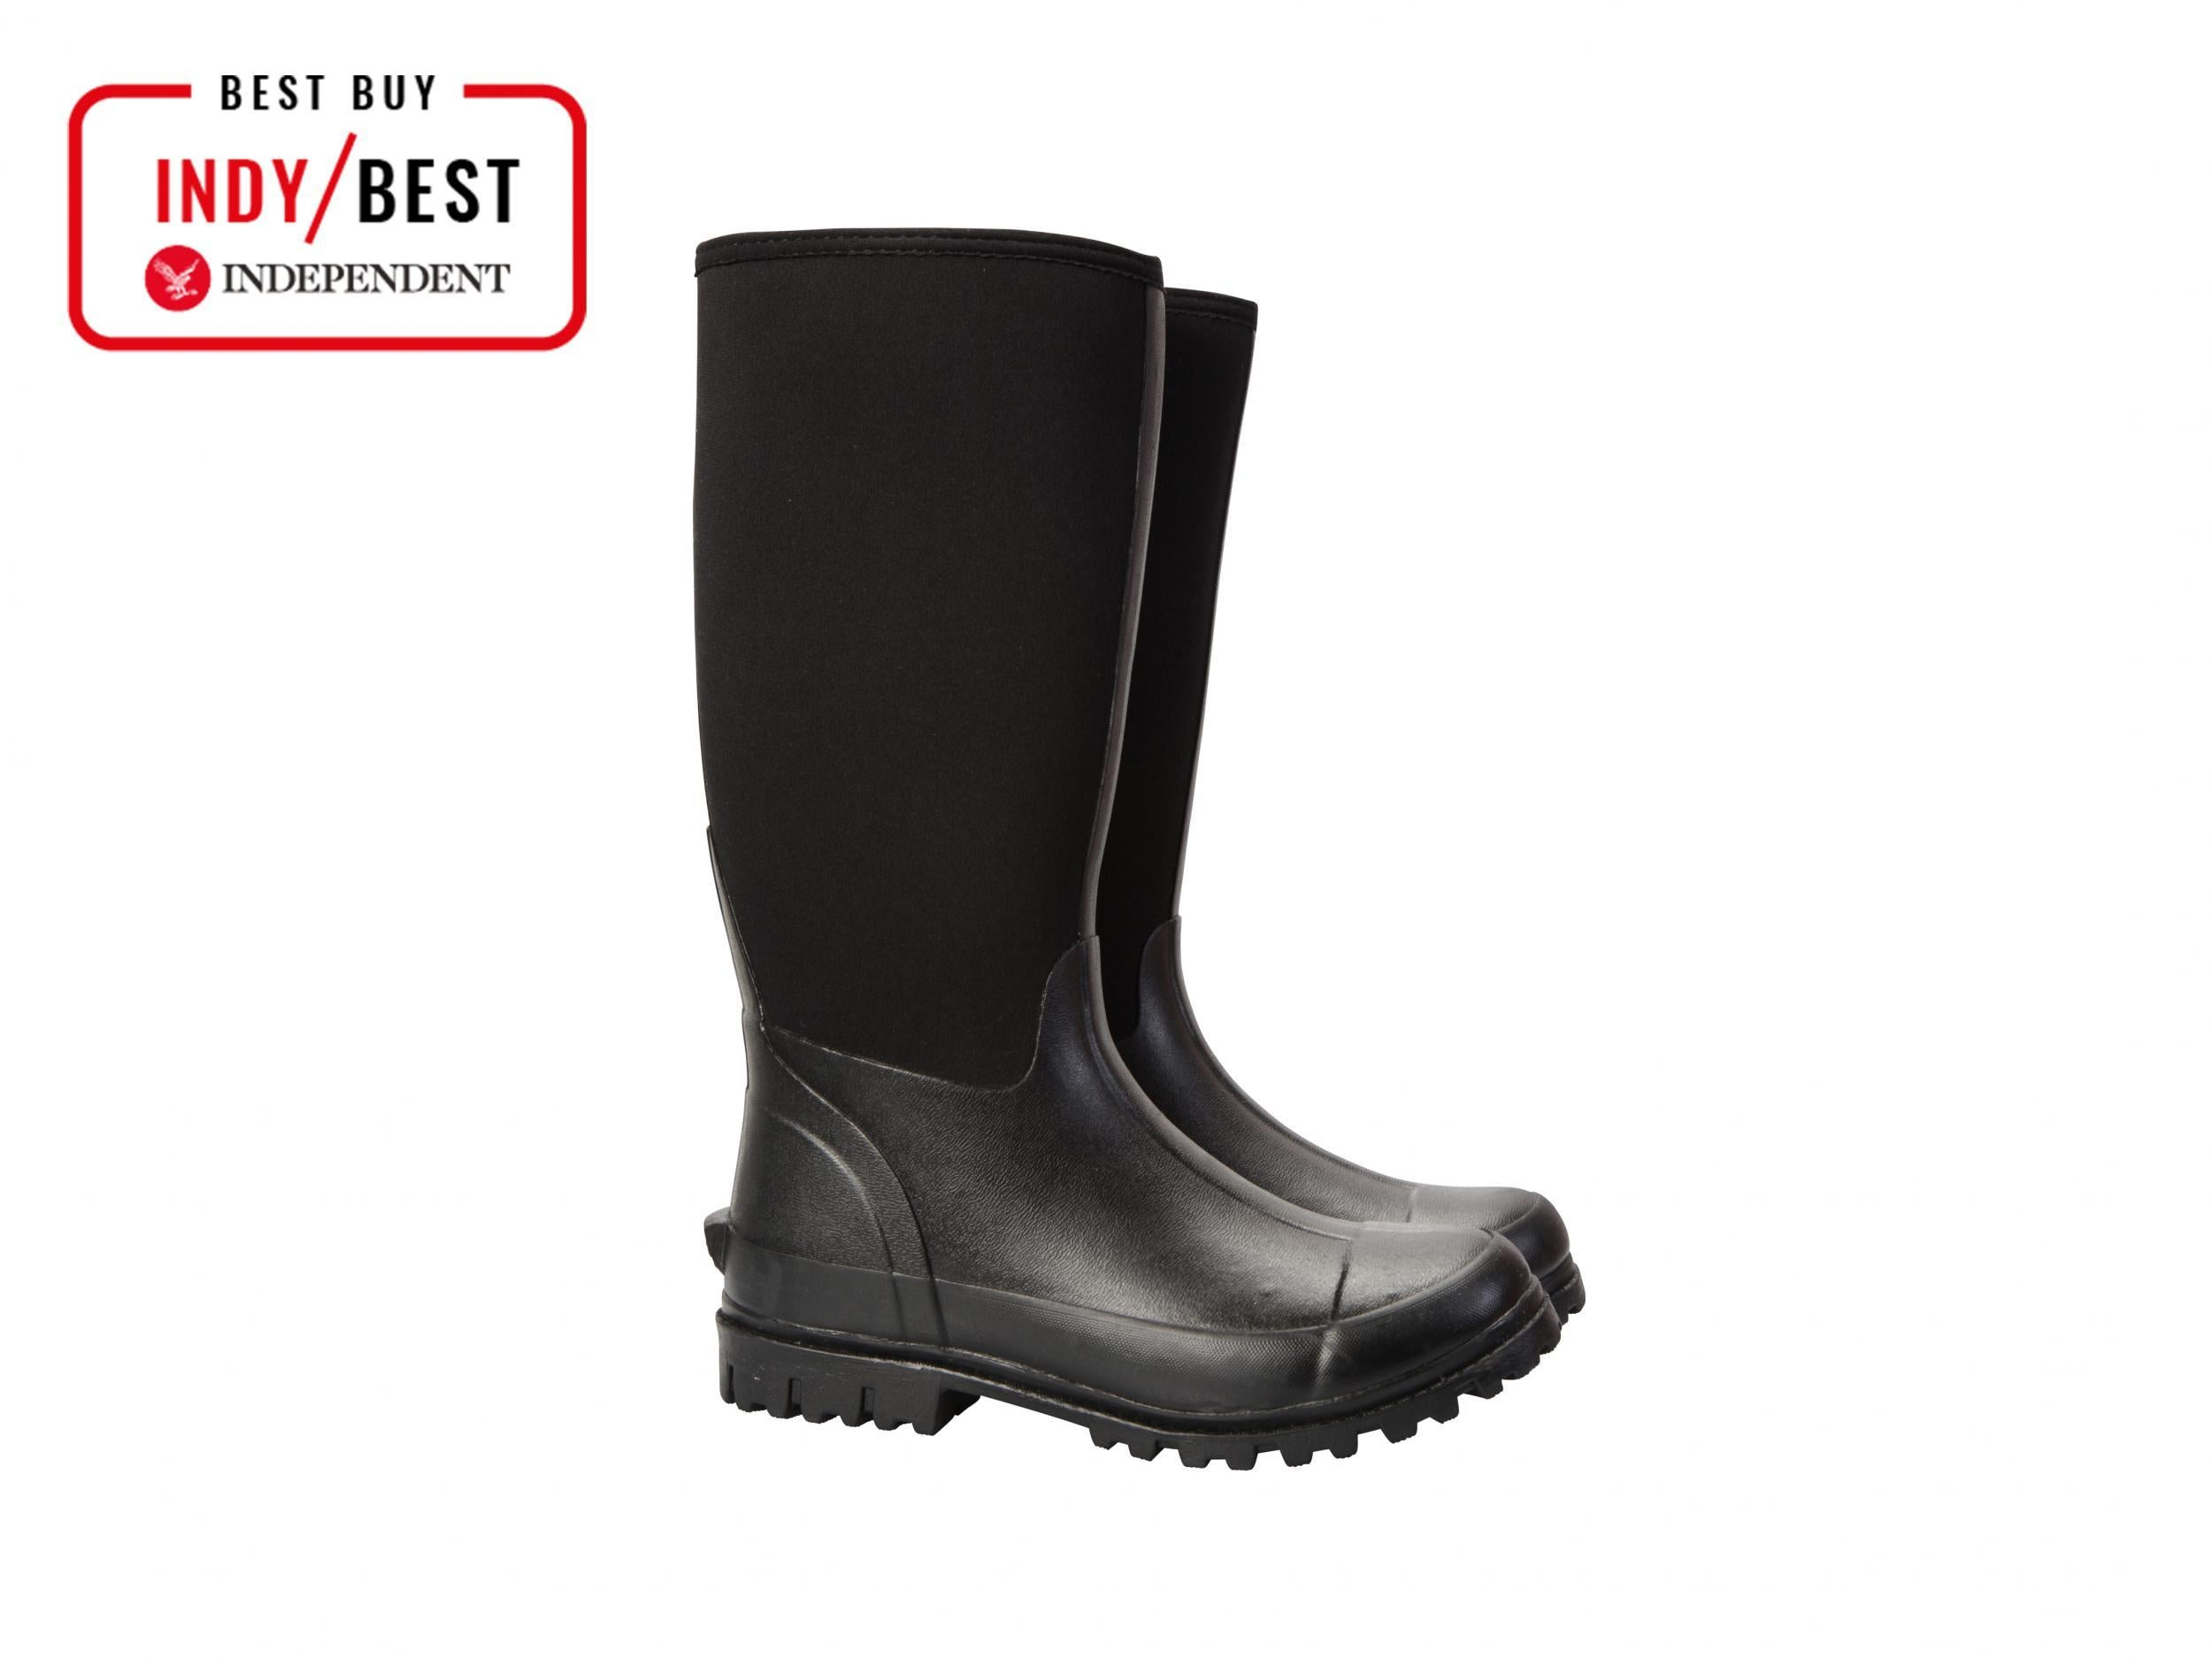 76205802c69 Best festival wellies that are comfortable, waterproof and durable